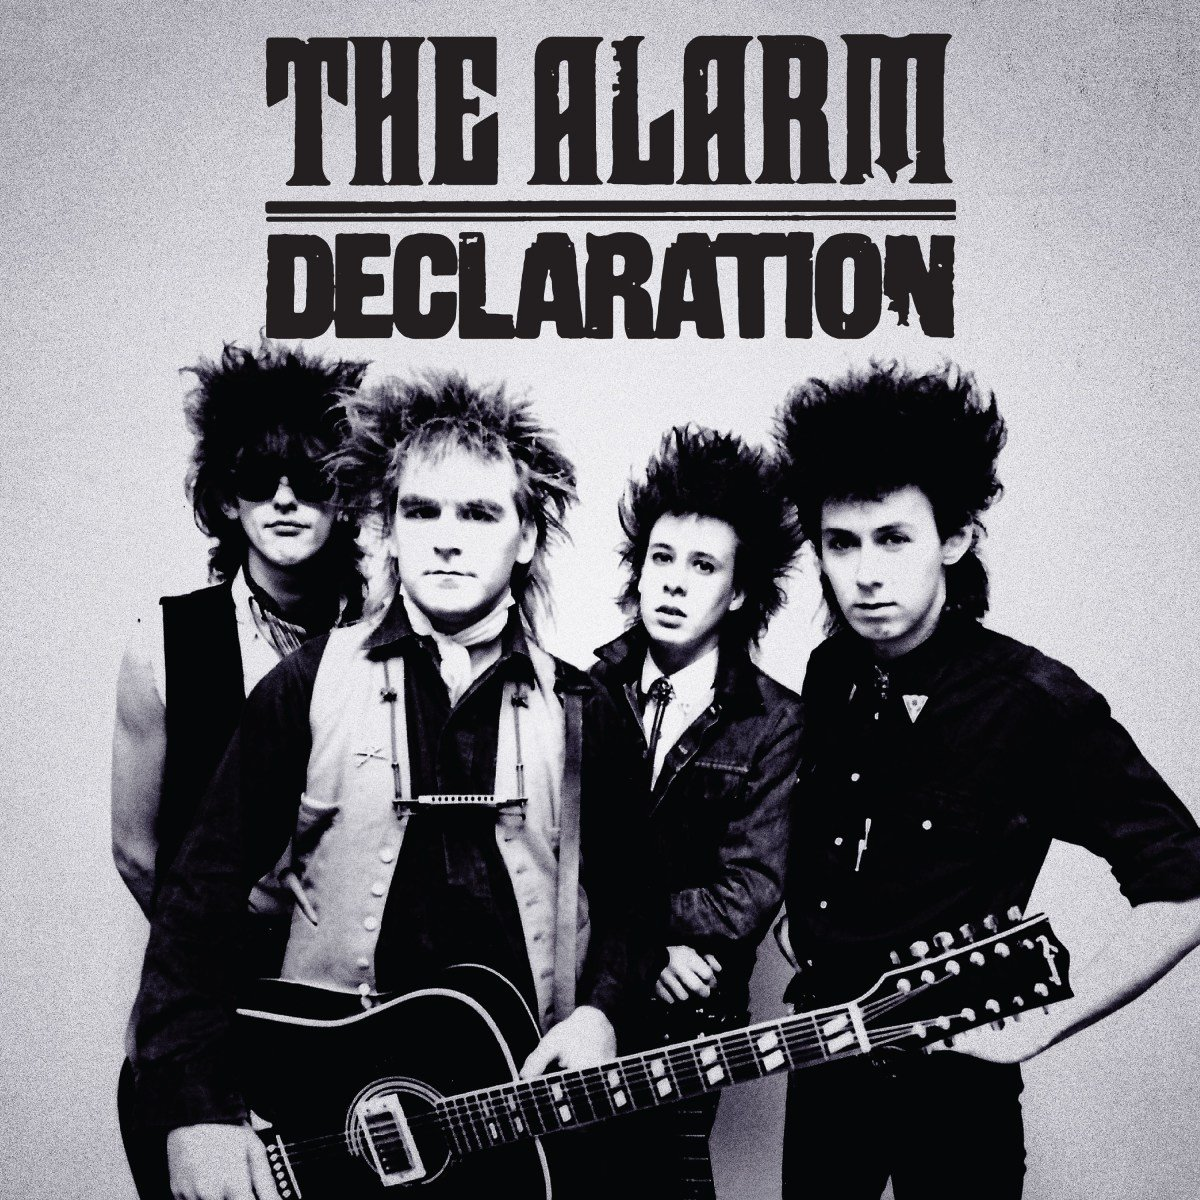 Vinilo : The Alarm - Declaration 1984-1985 (Gatefold LP Jacket, 2PC)